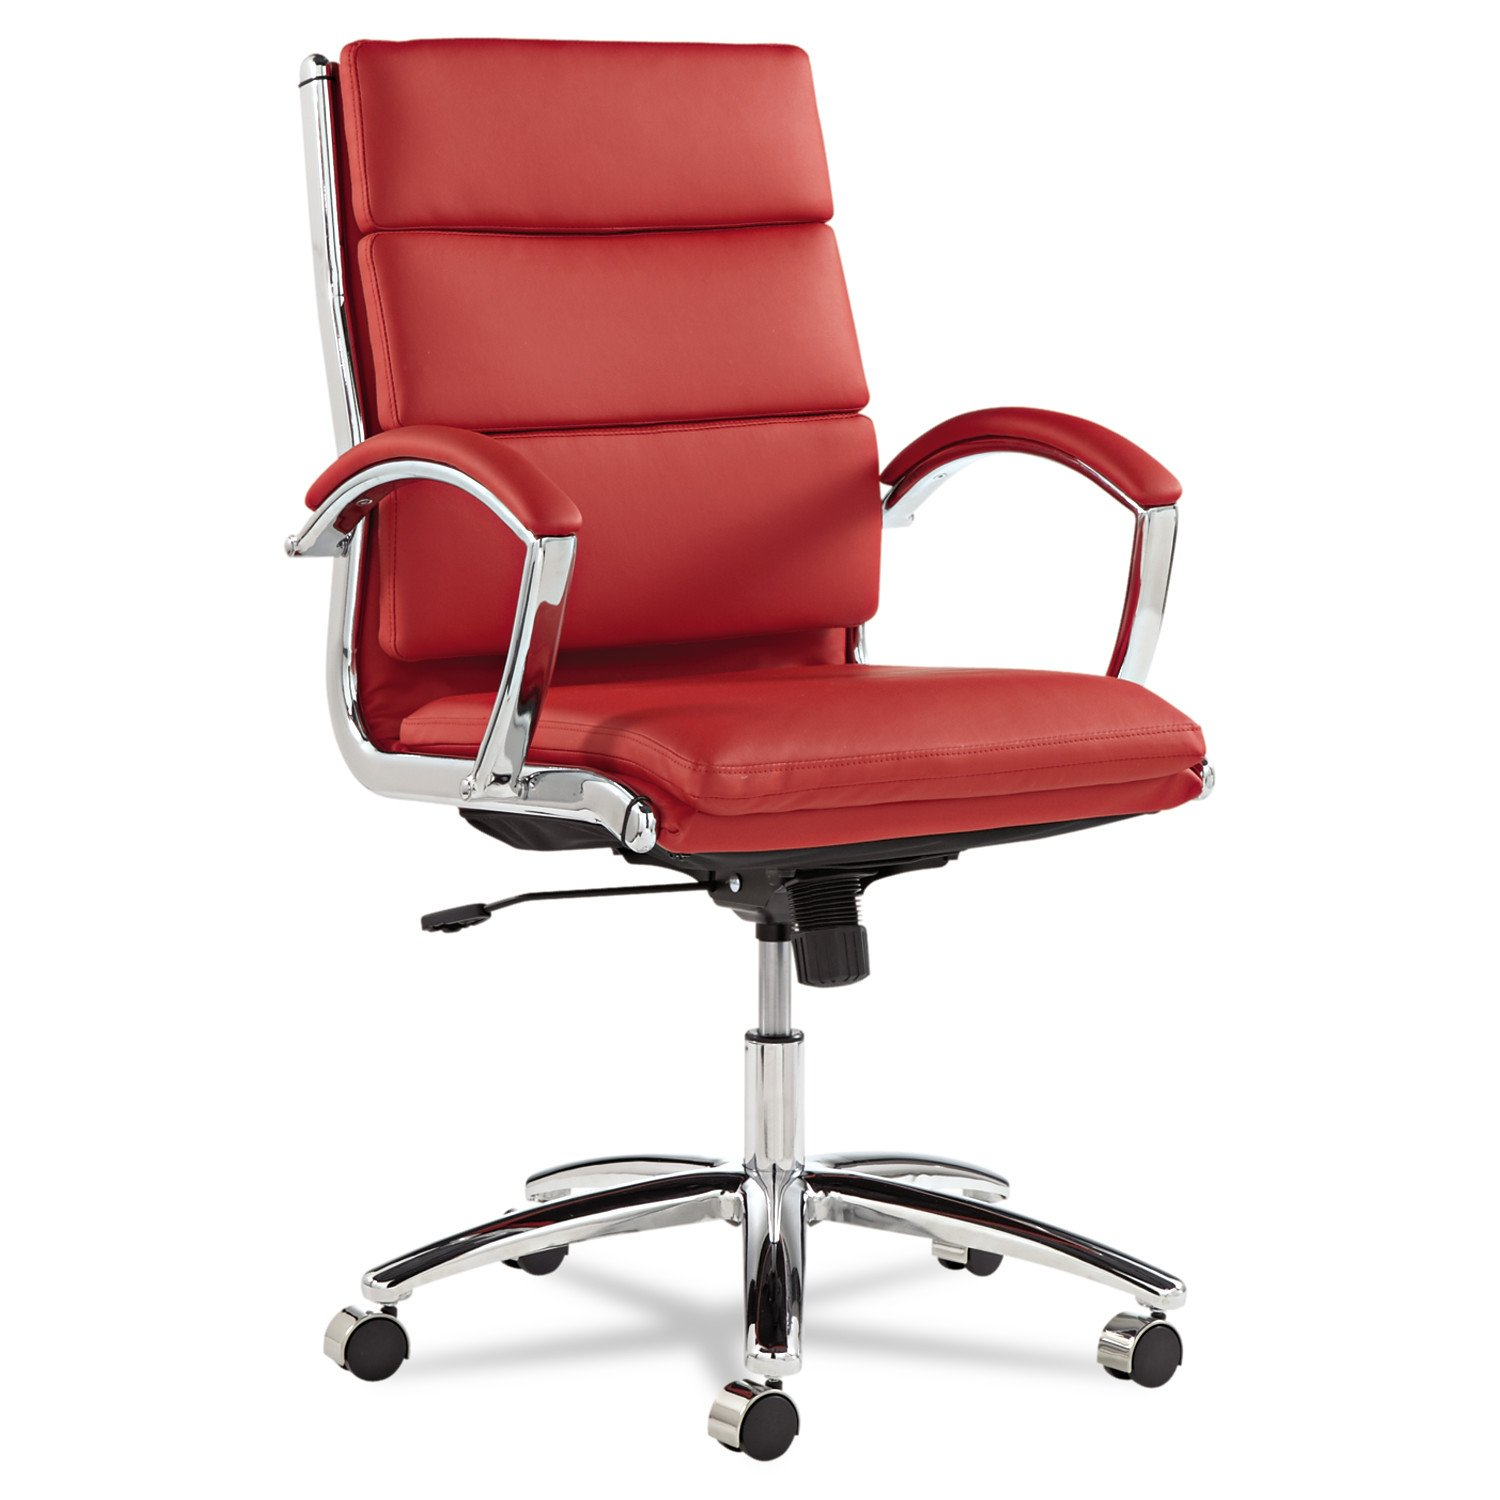 Alera ALENR4219 Neratoli Series Mid-Back Swivel/Tilt Chair, Black Leather, Chrome Frame United Stationers - DROPSHIP